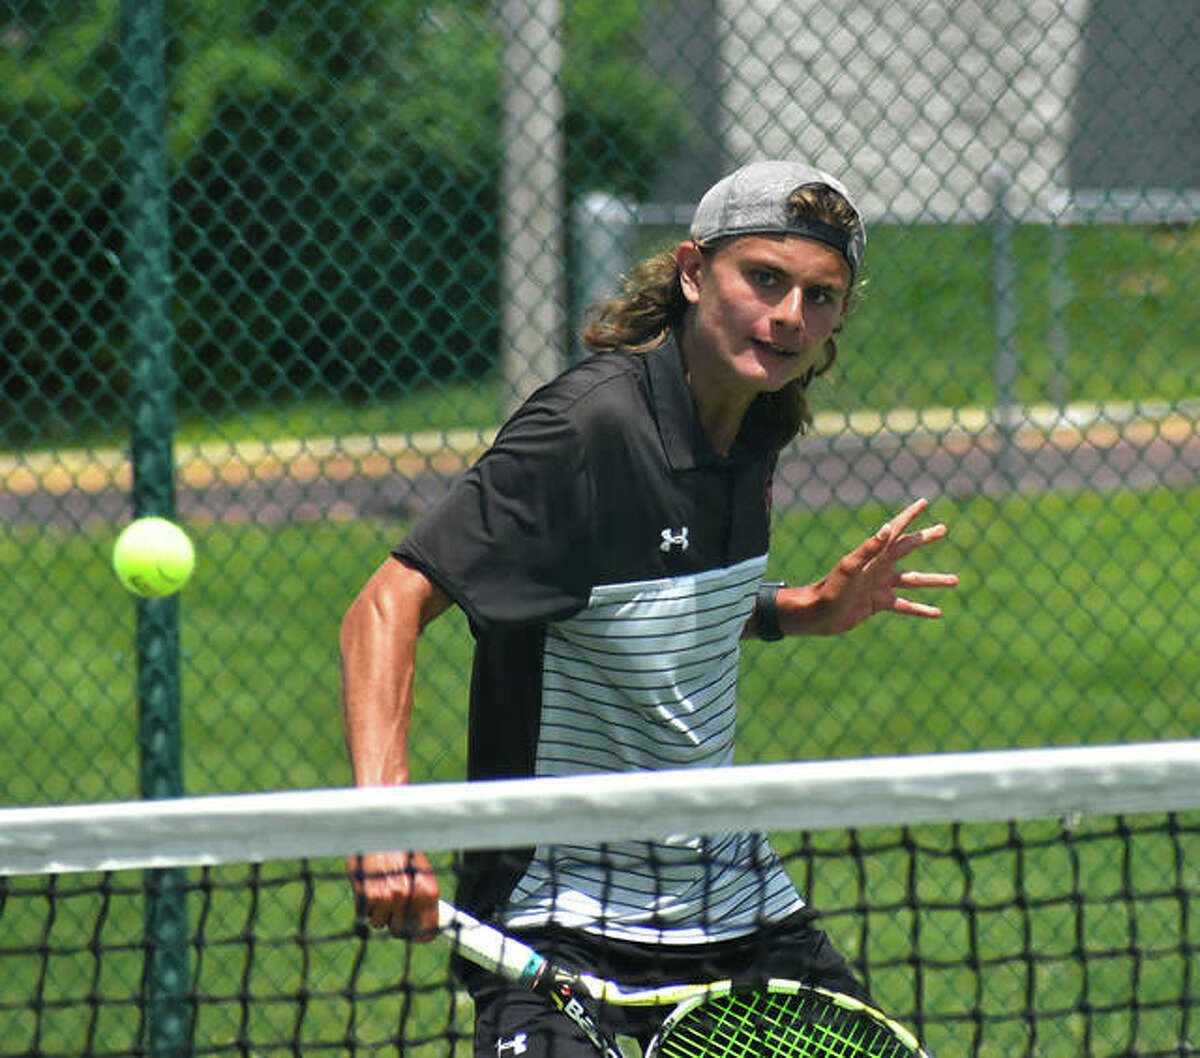 Edwardsville's Jace Ackerman takes a little off his backhand shot in his No. 4 singles championship match at the Southwestern Conference Tournament on Monday in O'Fallon.